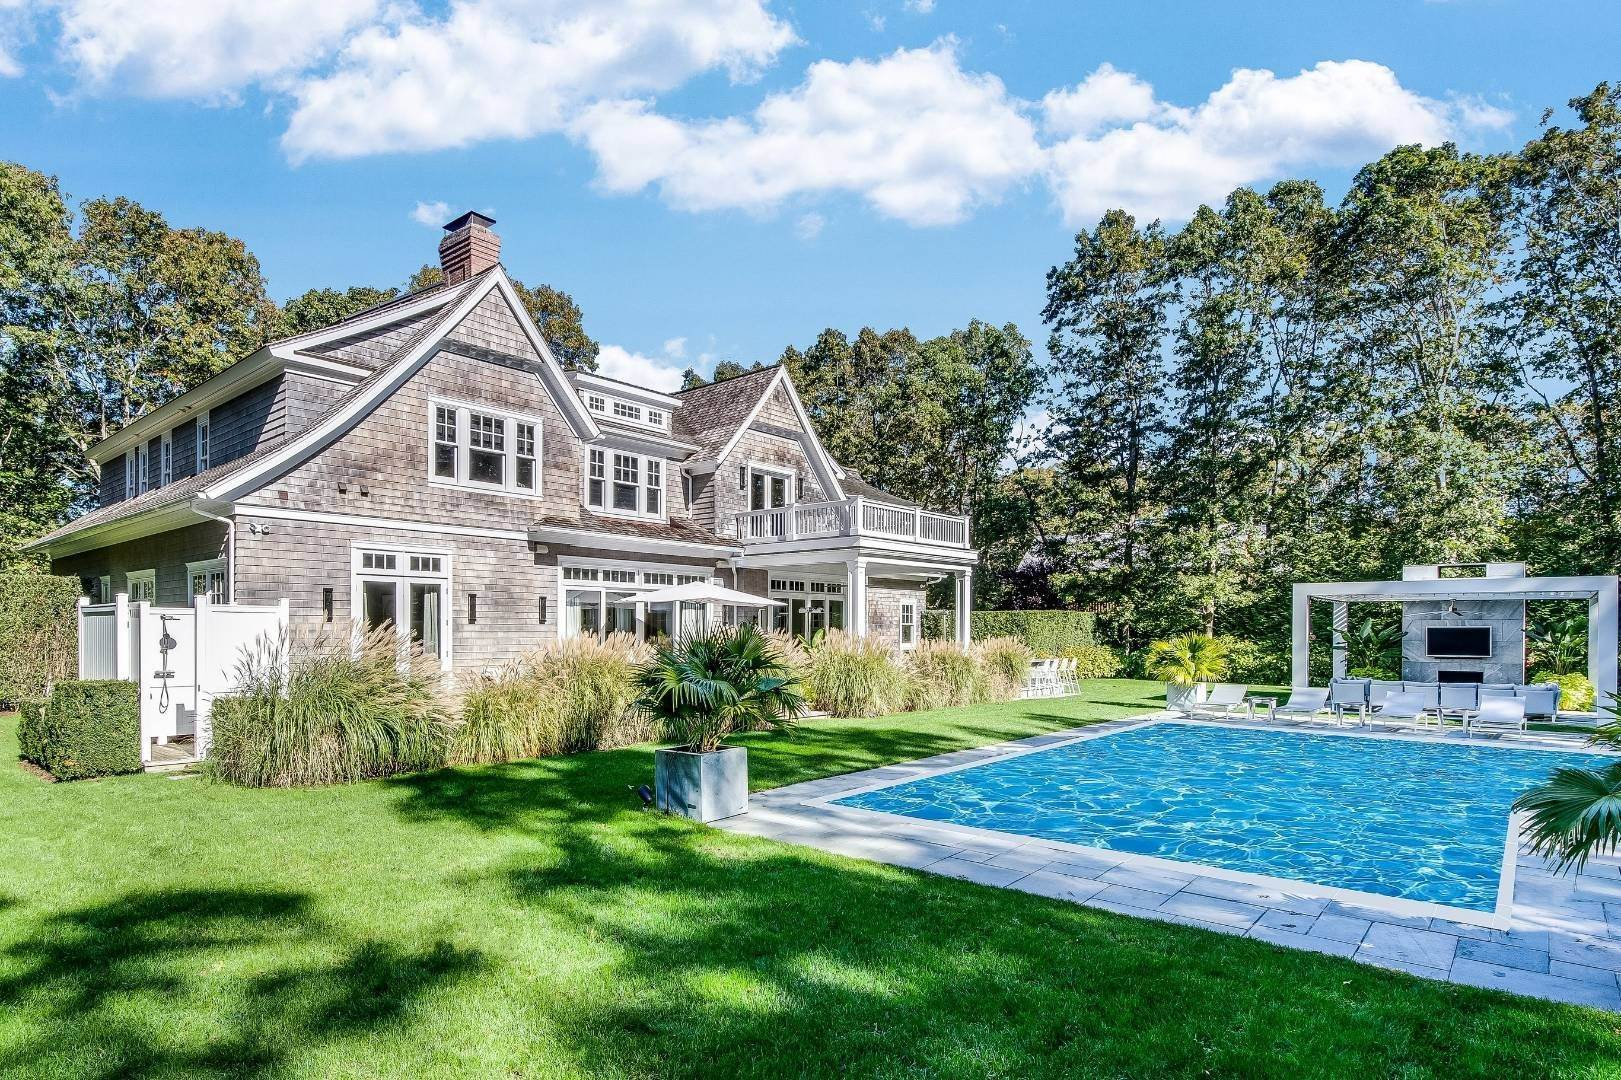 Single Family Home for Sale at Custom Built In Sagaponack 10 East Woods Path, Sagaponack, NY 11962